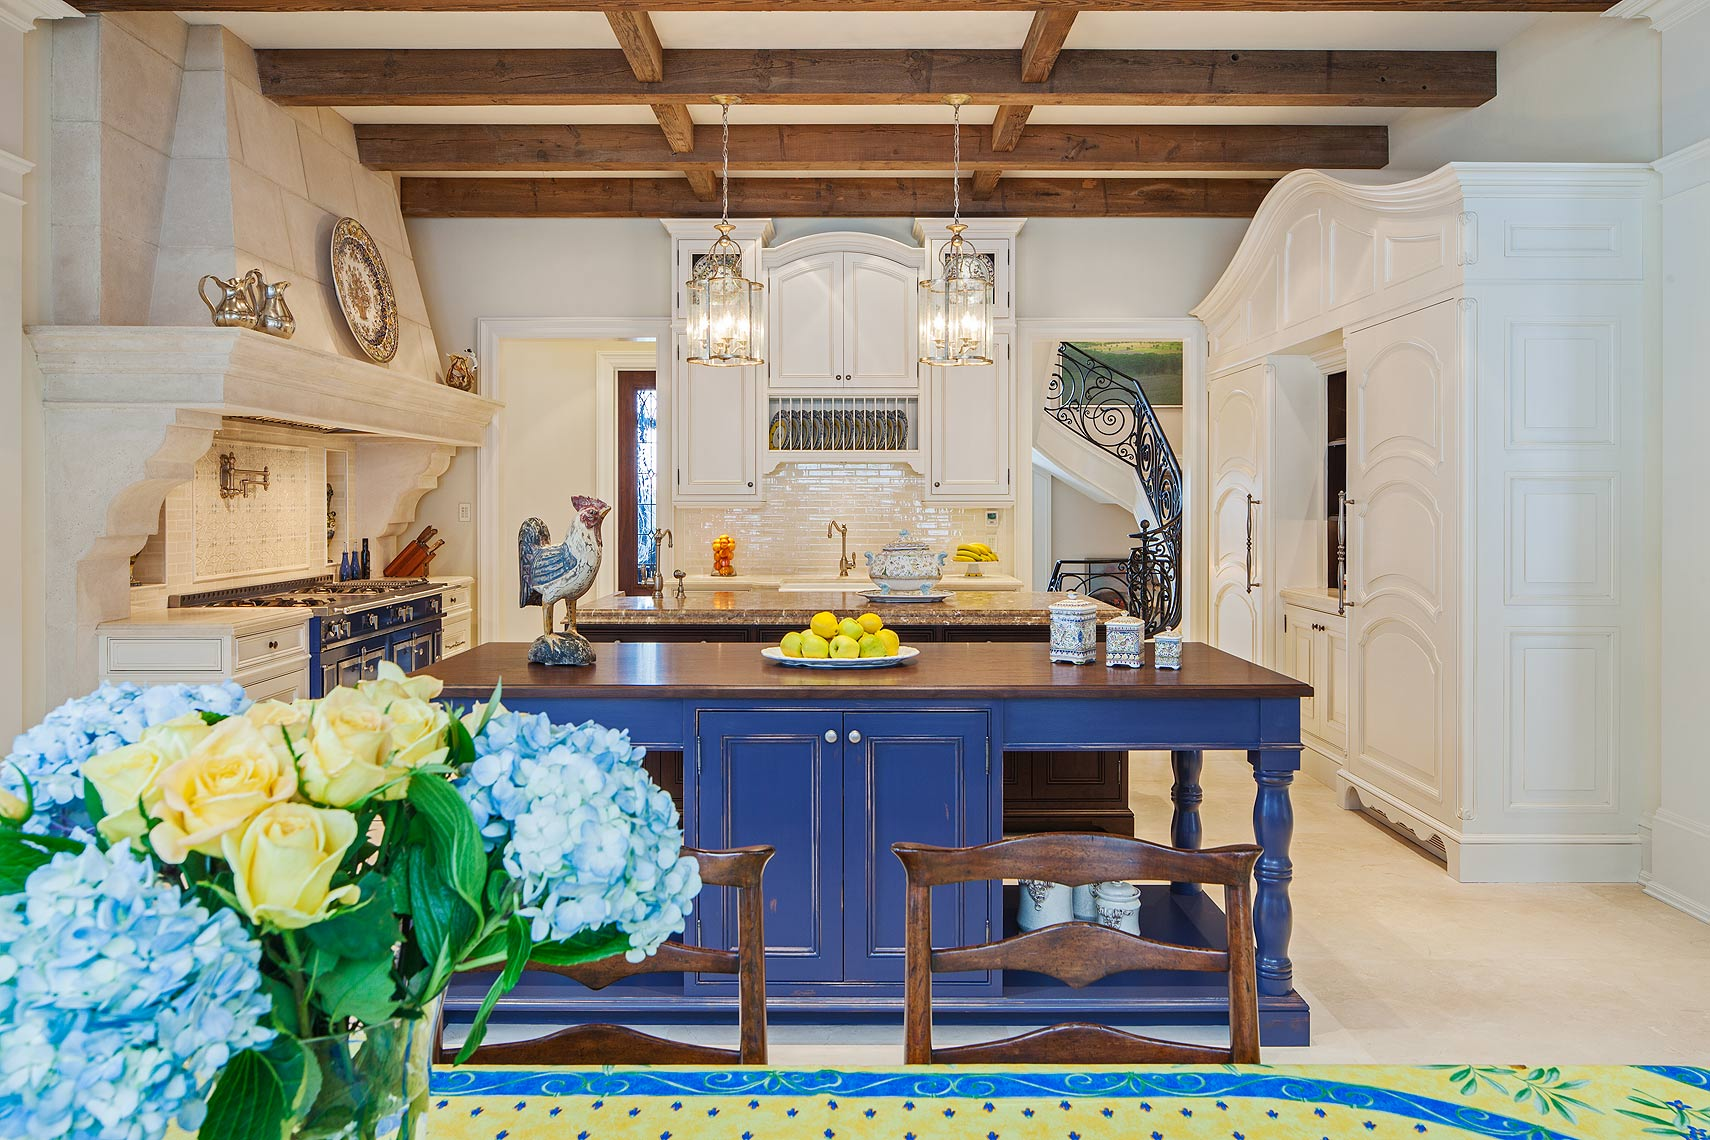 2-interiordesign-traditional-MakowArchitects-035-traditionalfrenchcountrykitchen